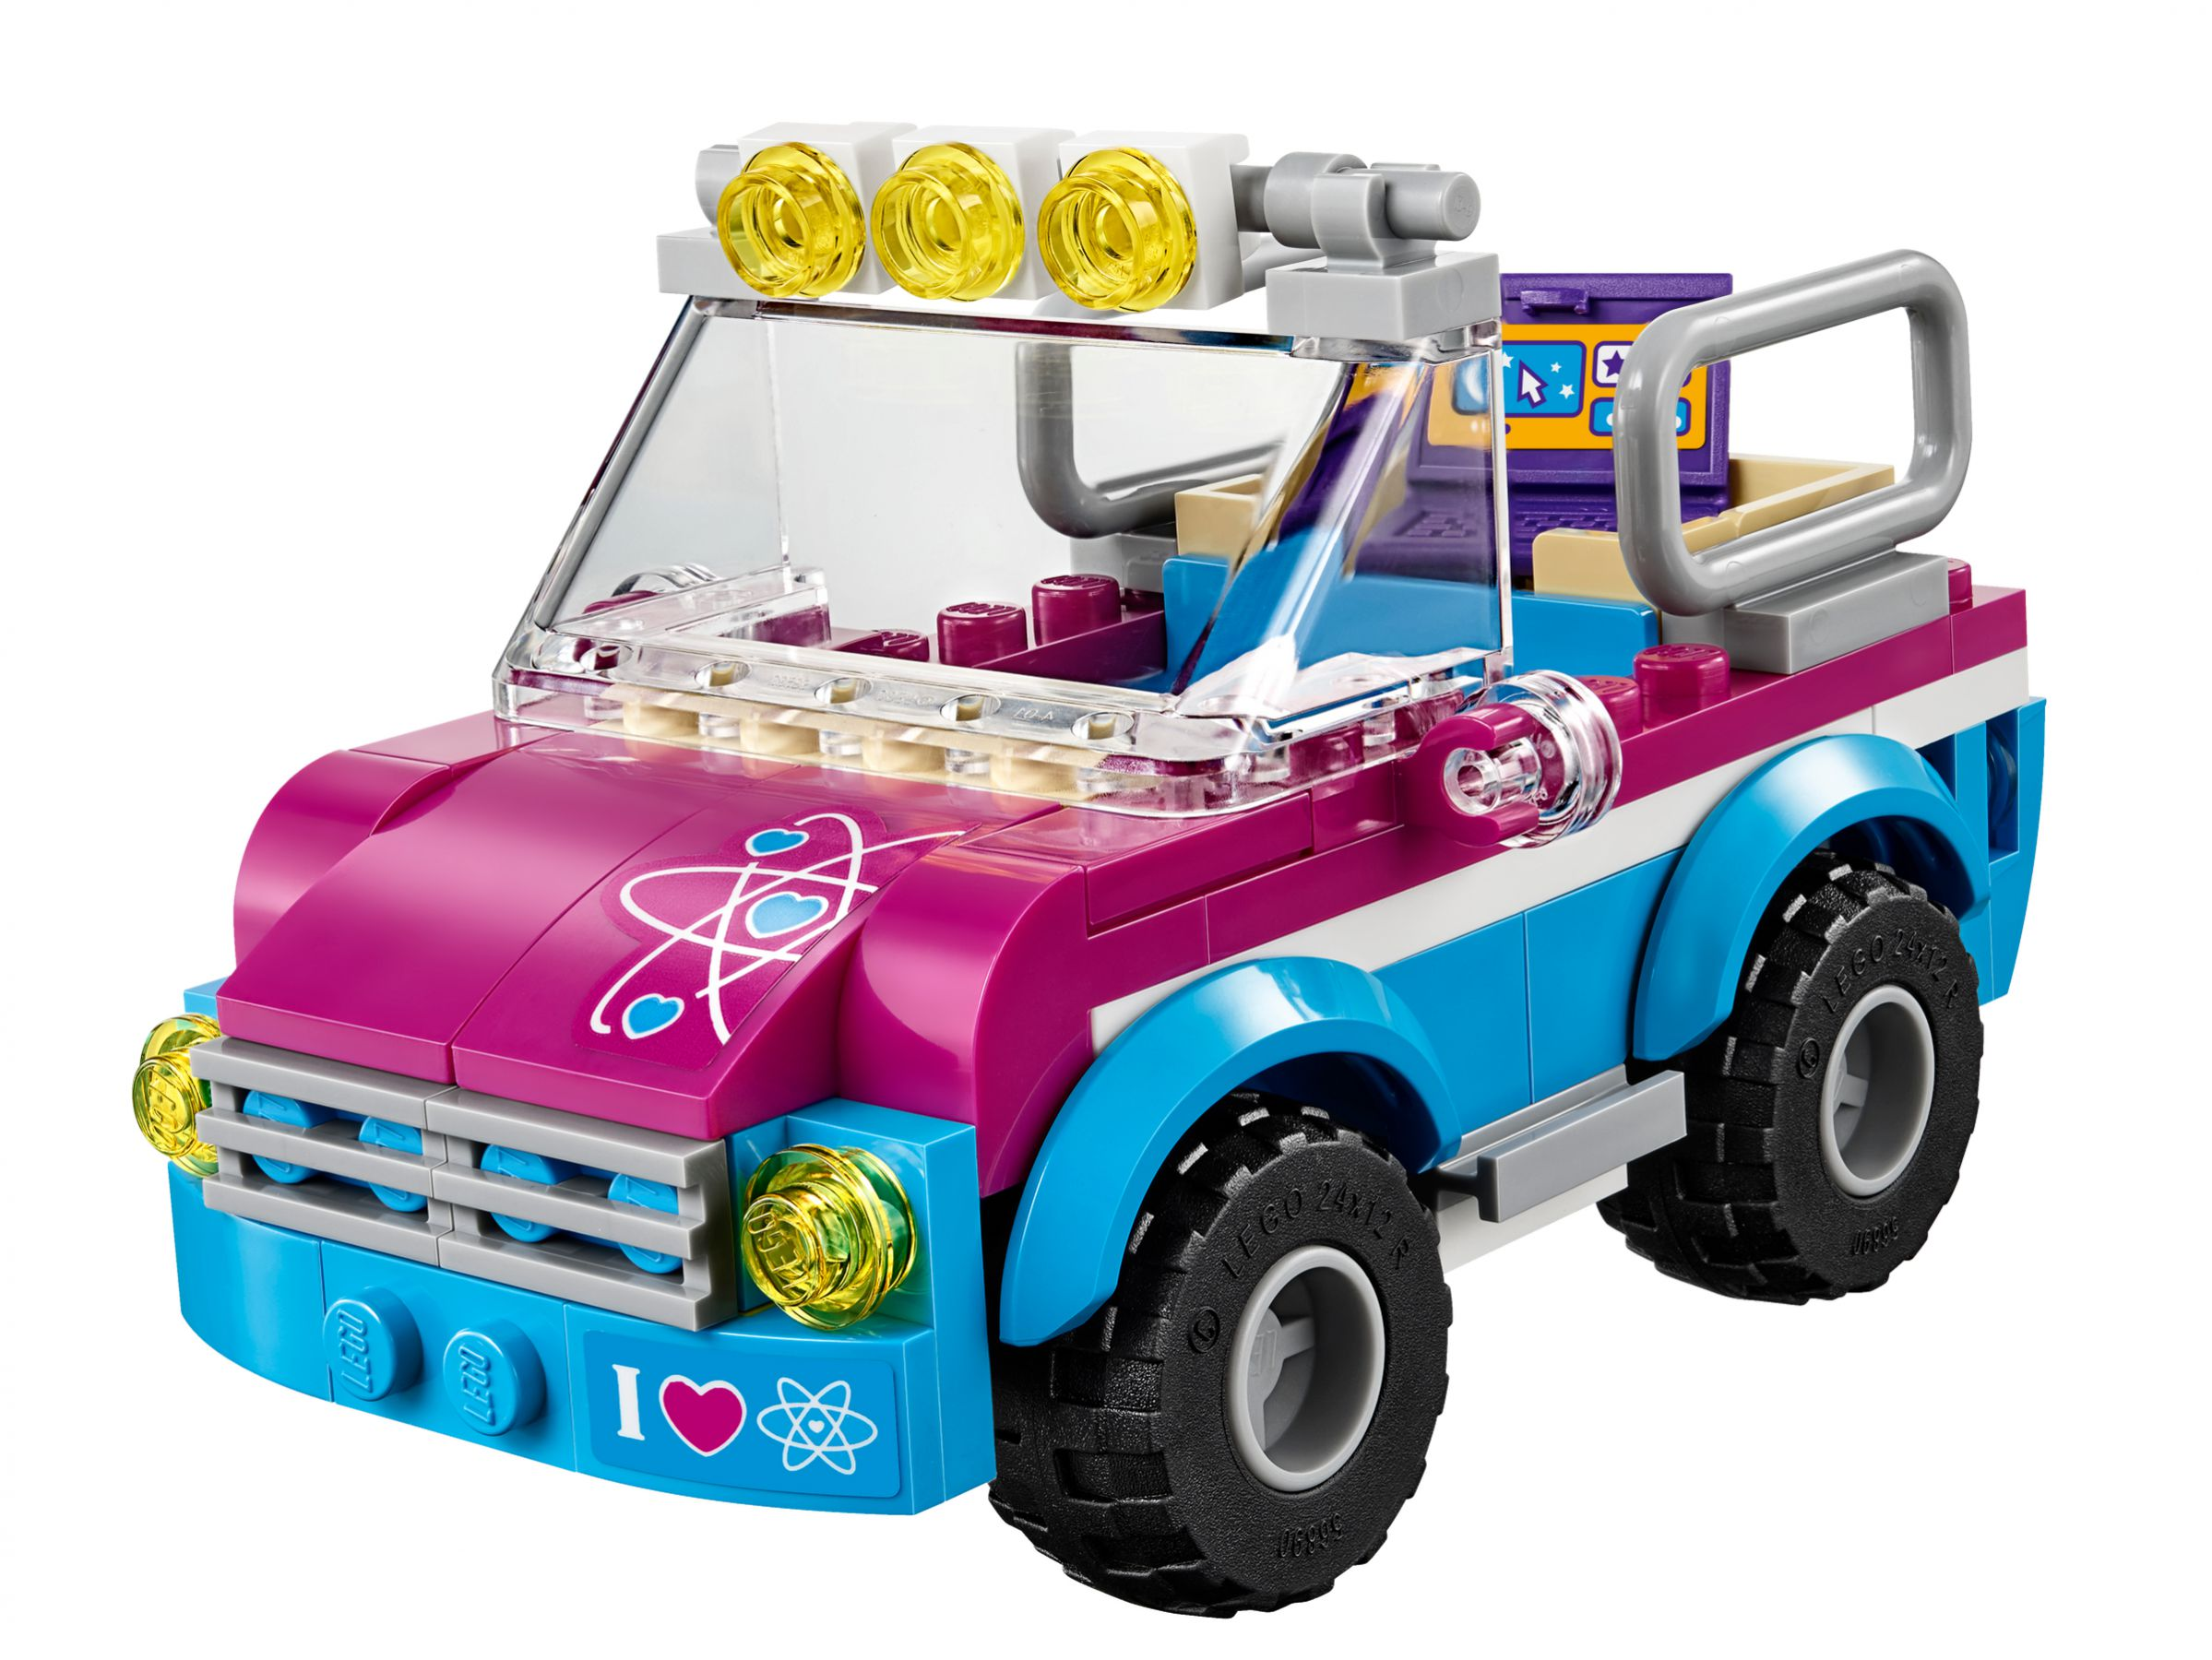 LEGO Friends 41116 Olivias Expeditionsauto LEGO_41116_alt2.jpg